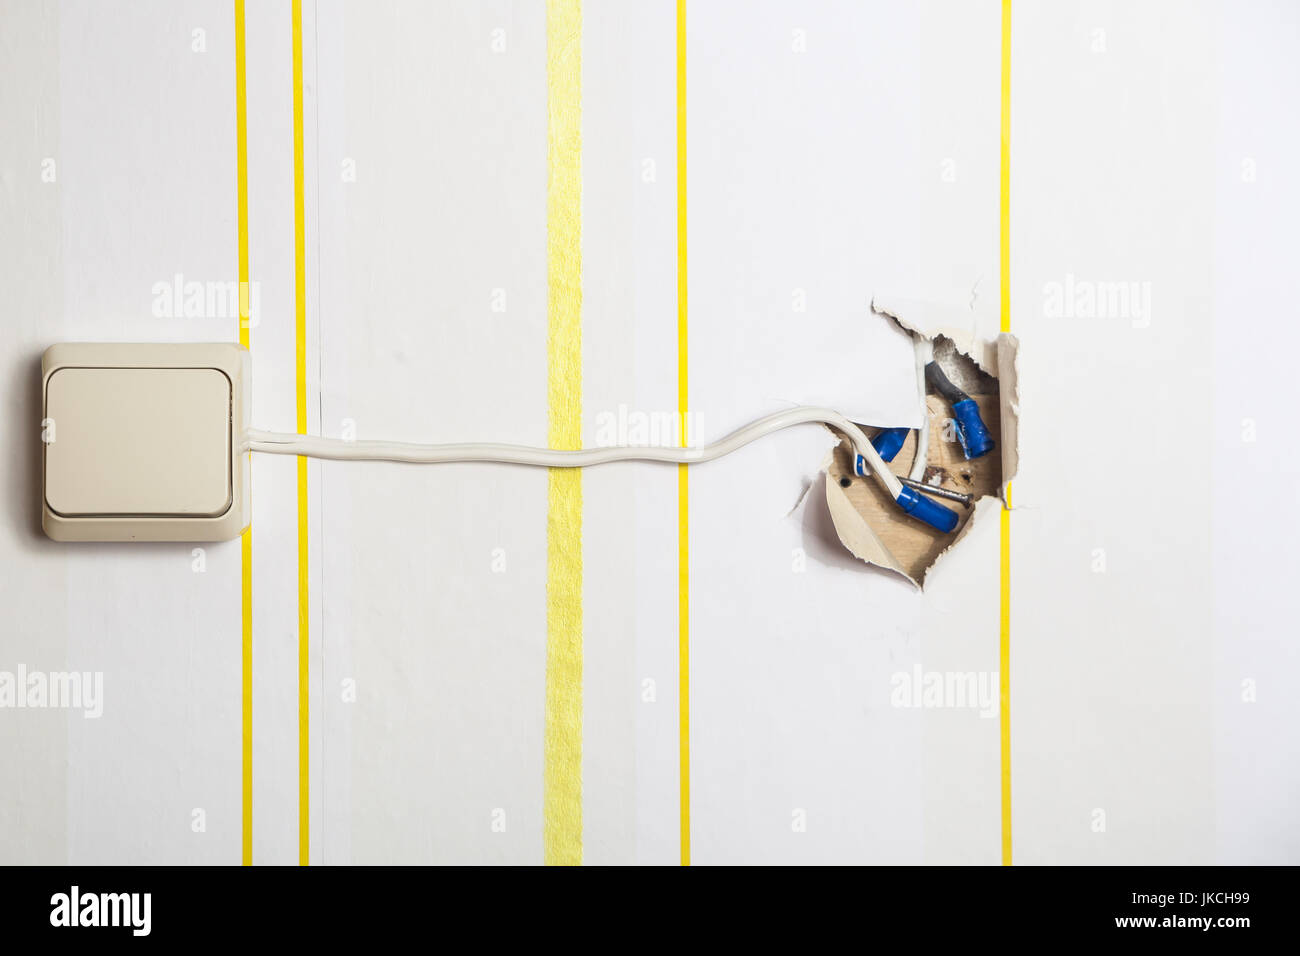 Switchplate Stockfotos & Switchplate Bilder - Alamy